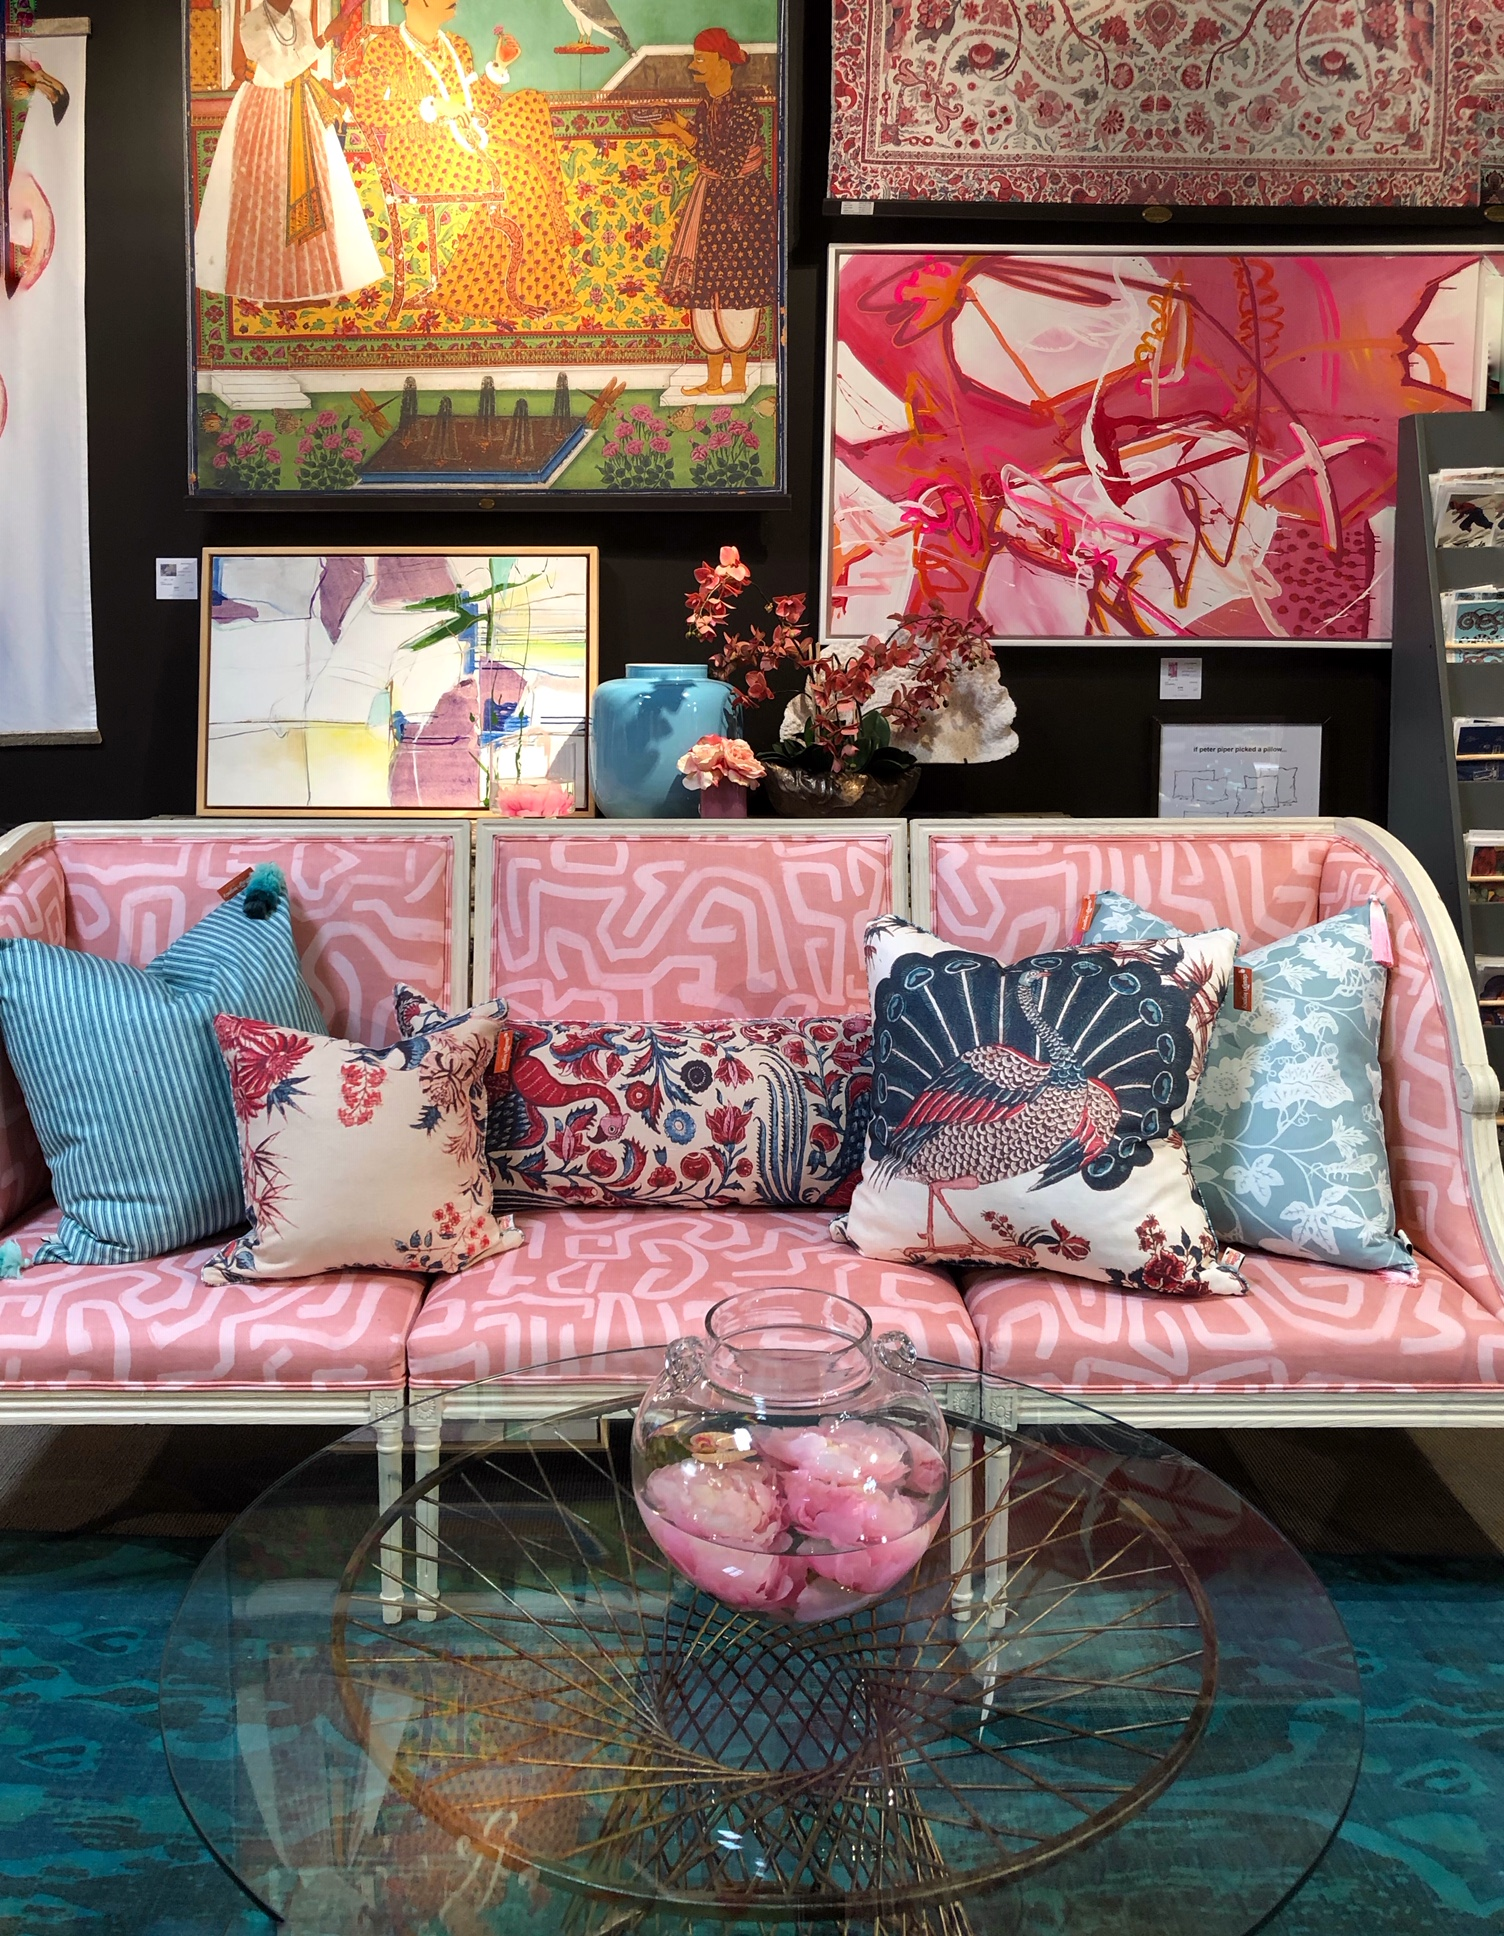 pink sofa with colorful patterned pillows